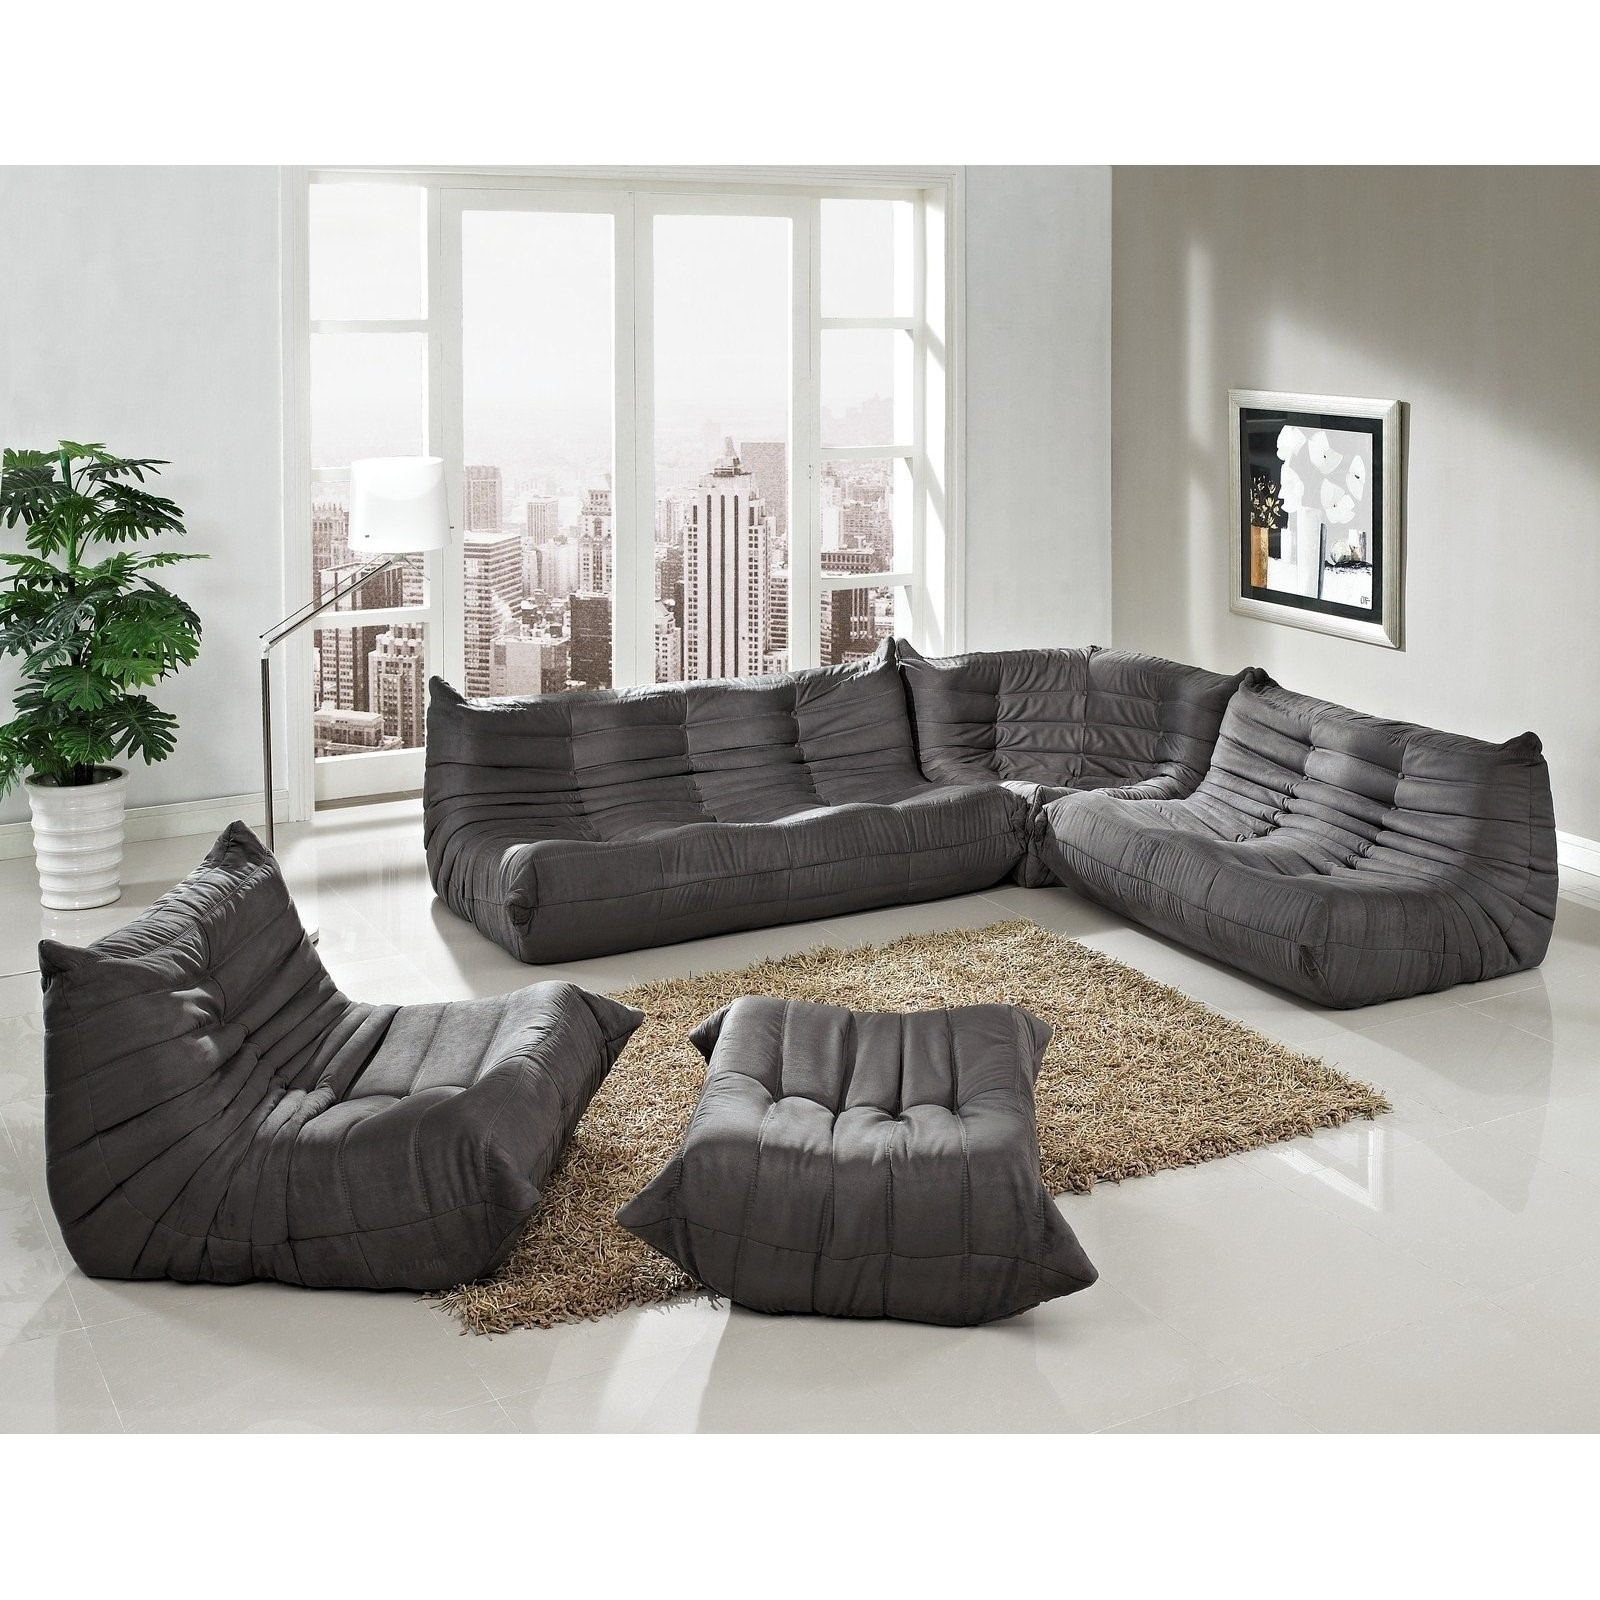 Inspiration about Astonishing 10 Foot Sectional Sofa 58 On Ikea Sleeper Sofa With With 10 Foot  sc 1 st  Home Design Projects : 10 foot sectional sofa - Sectionals, Sofas & Couches